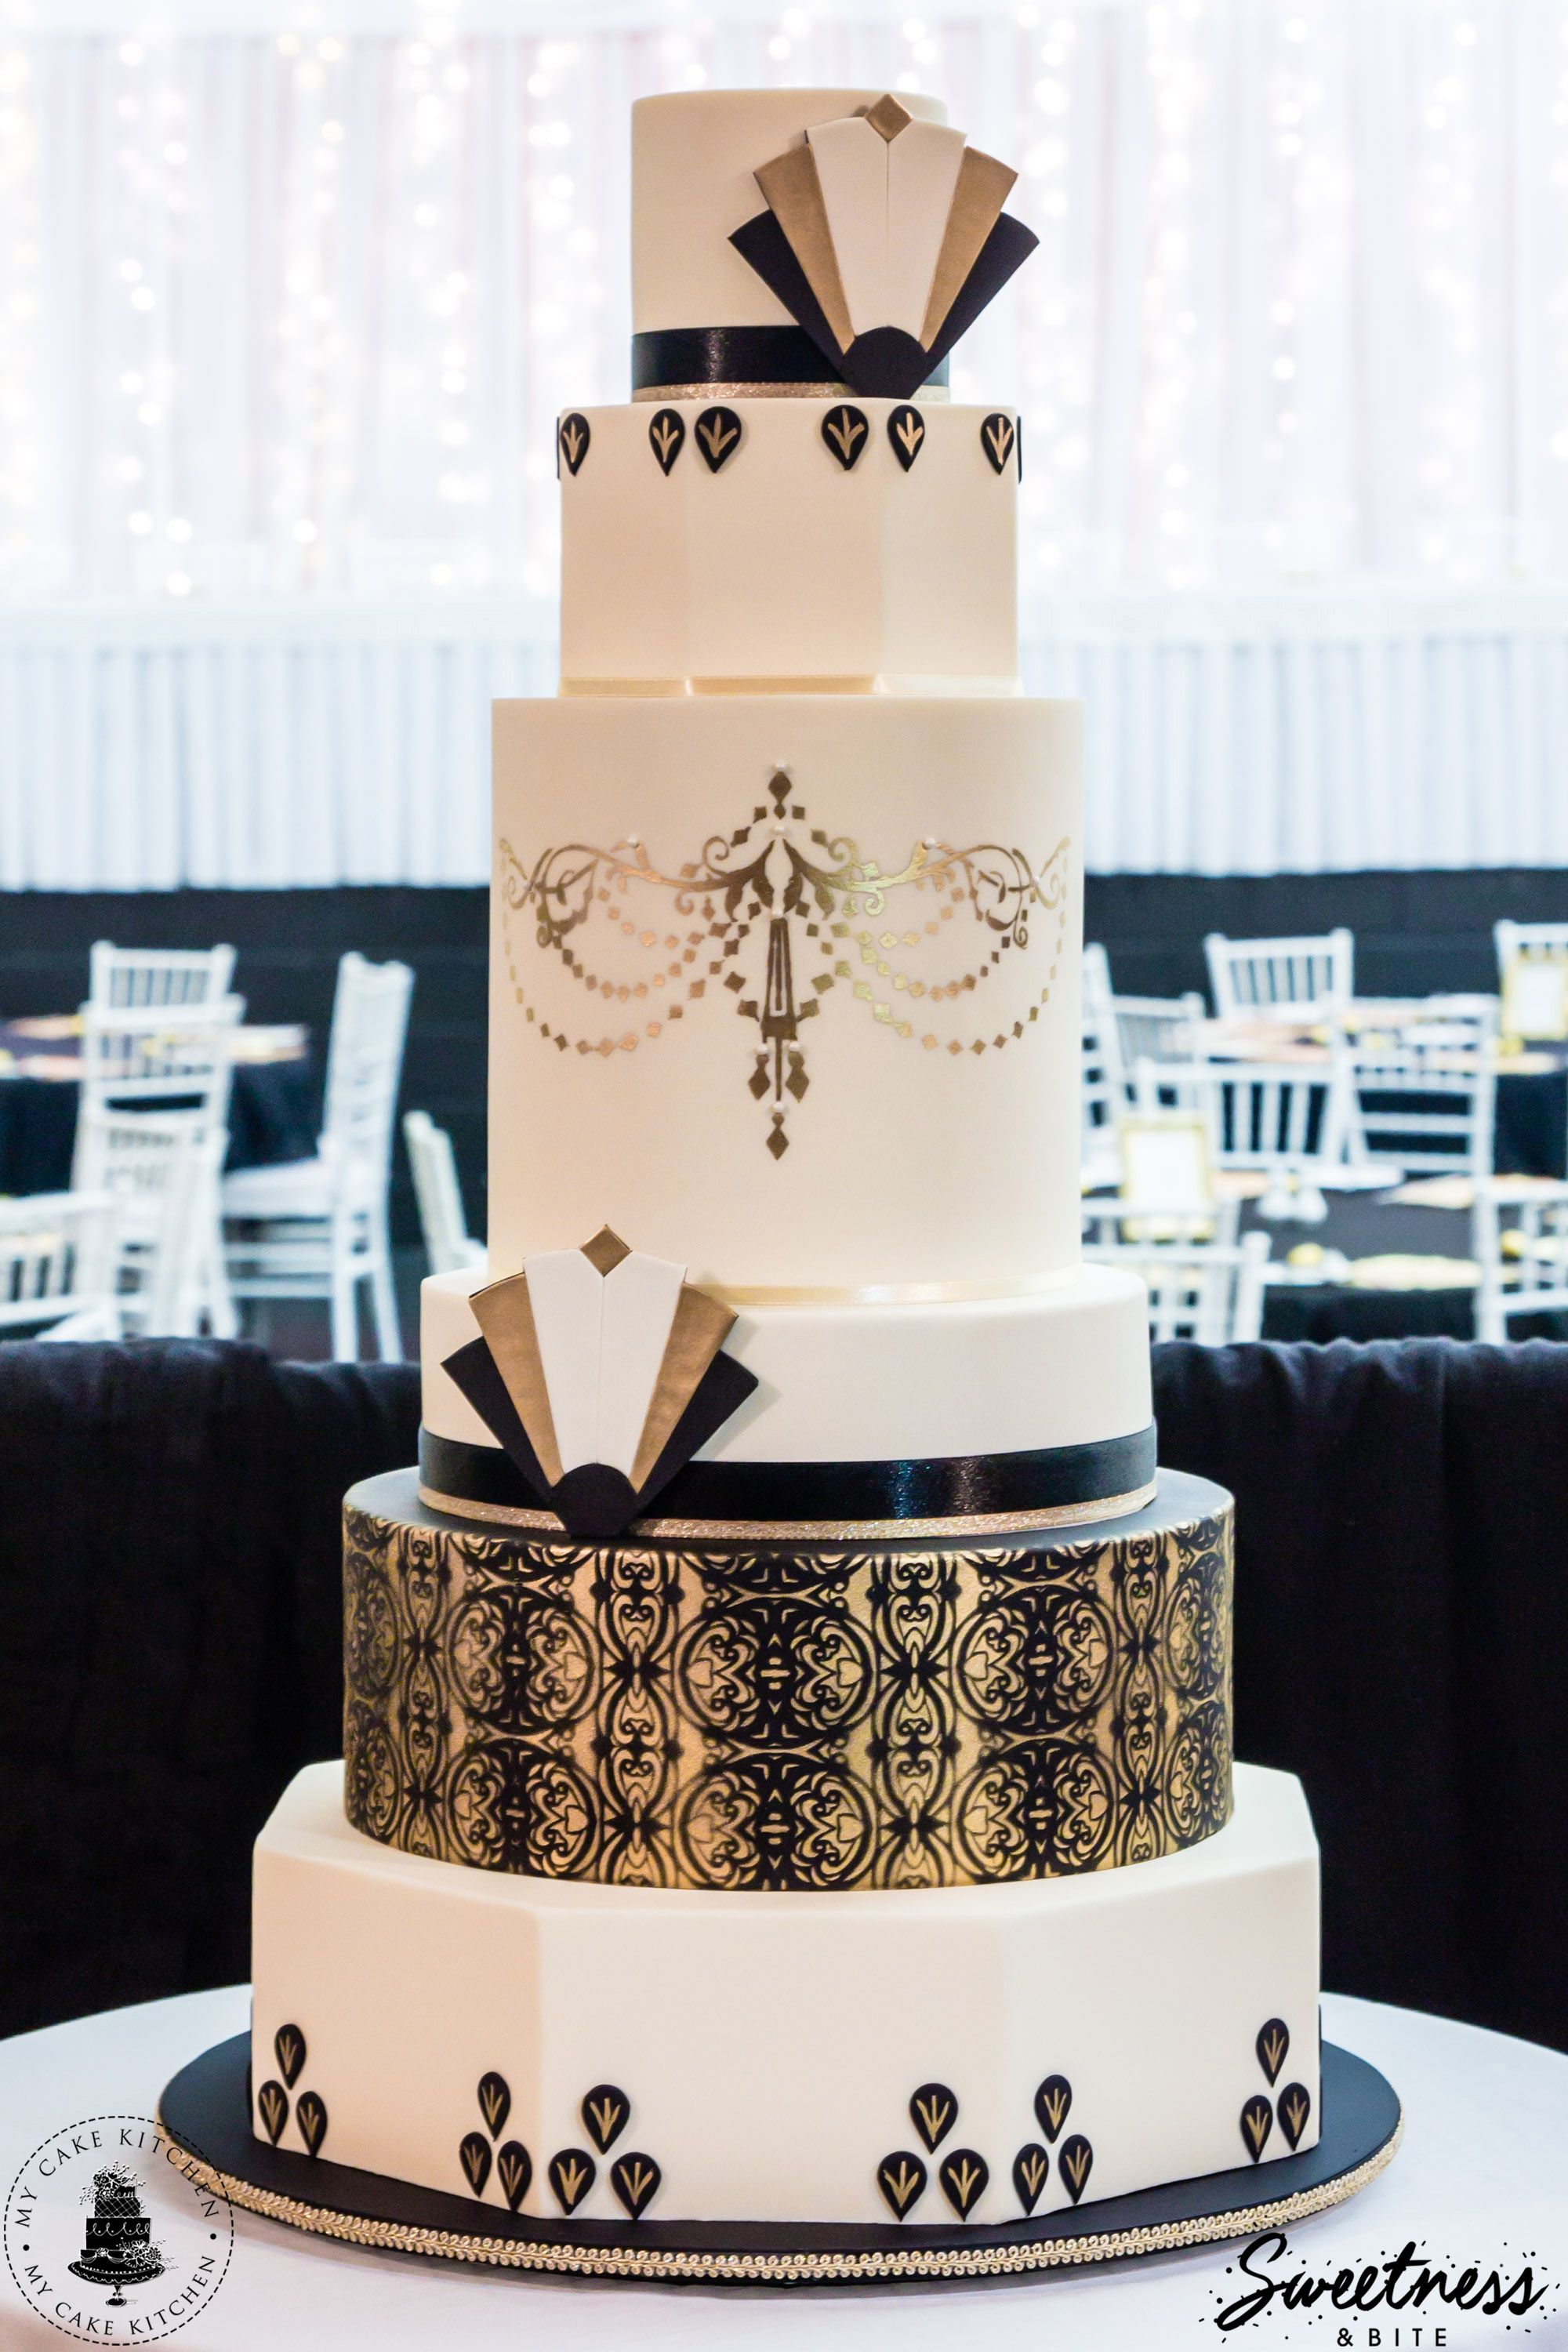 Black Ivory And Gold Art Deco Wedding Cake Designed Created By Lee My Kitchen Natalie Sweetness Bite